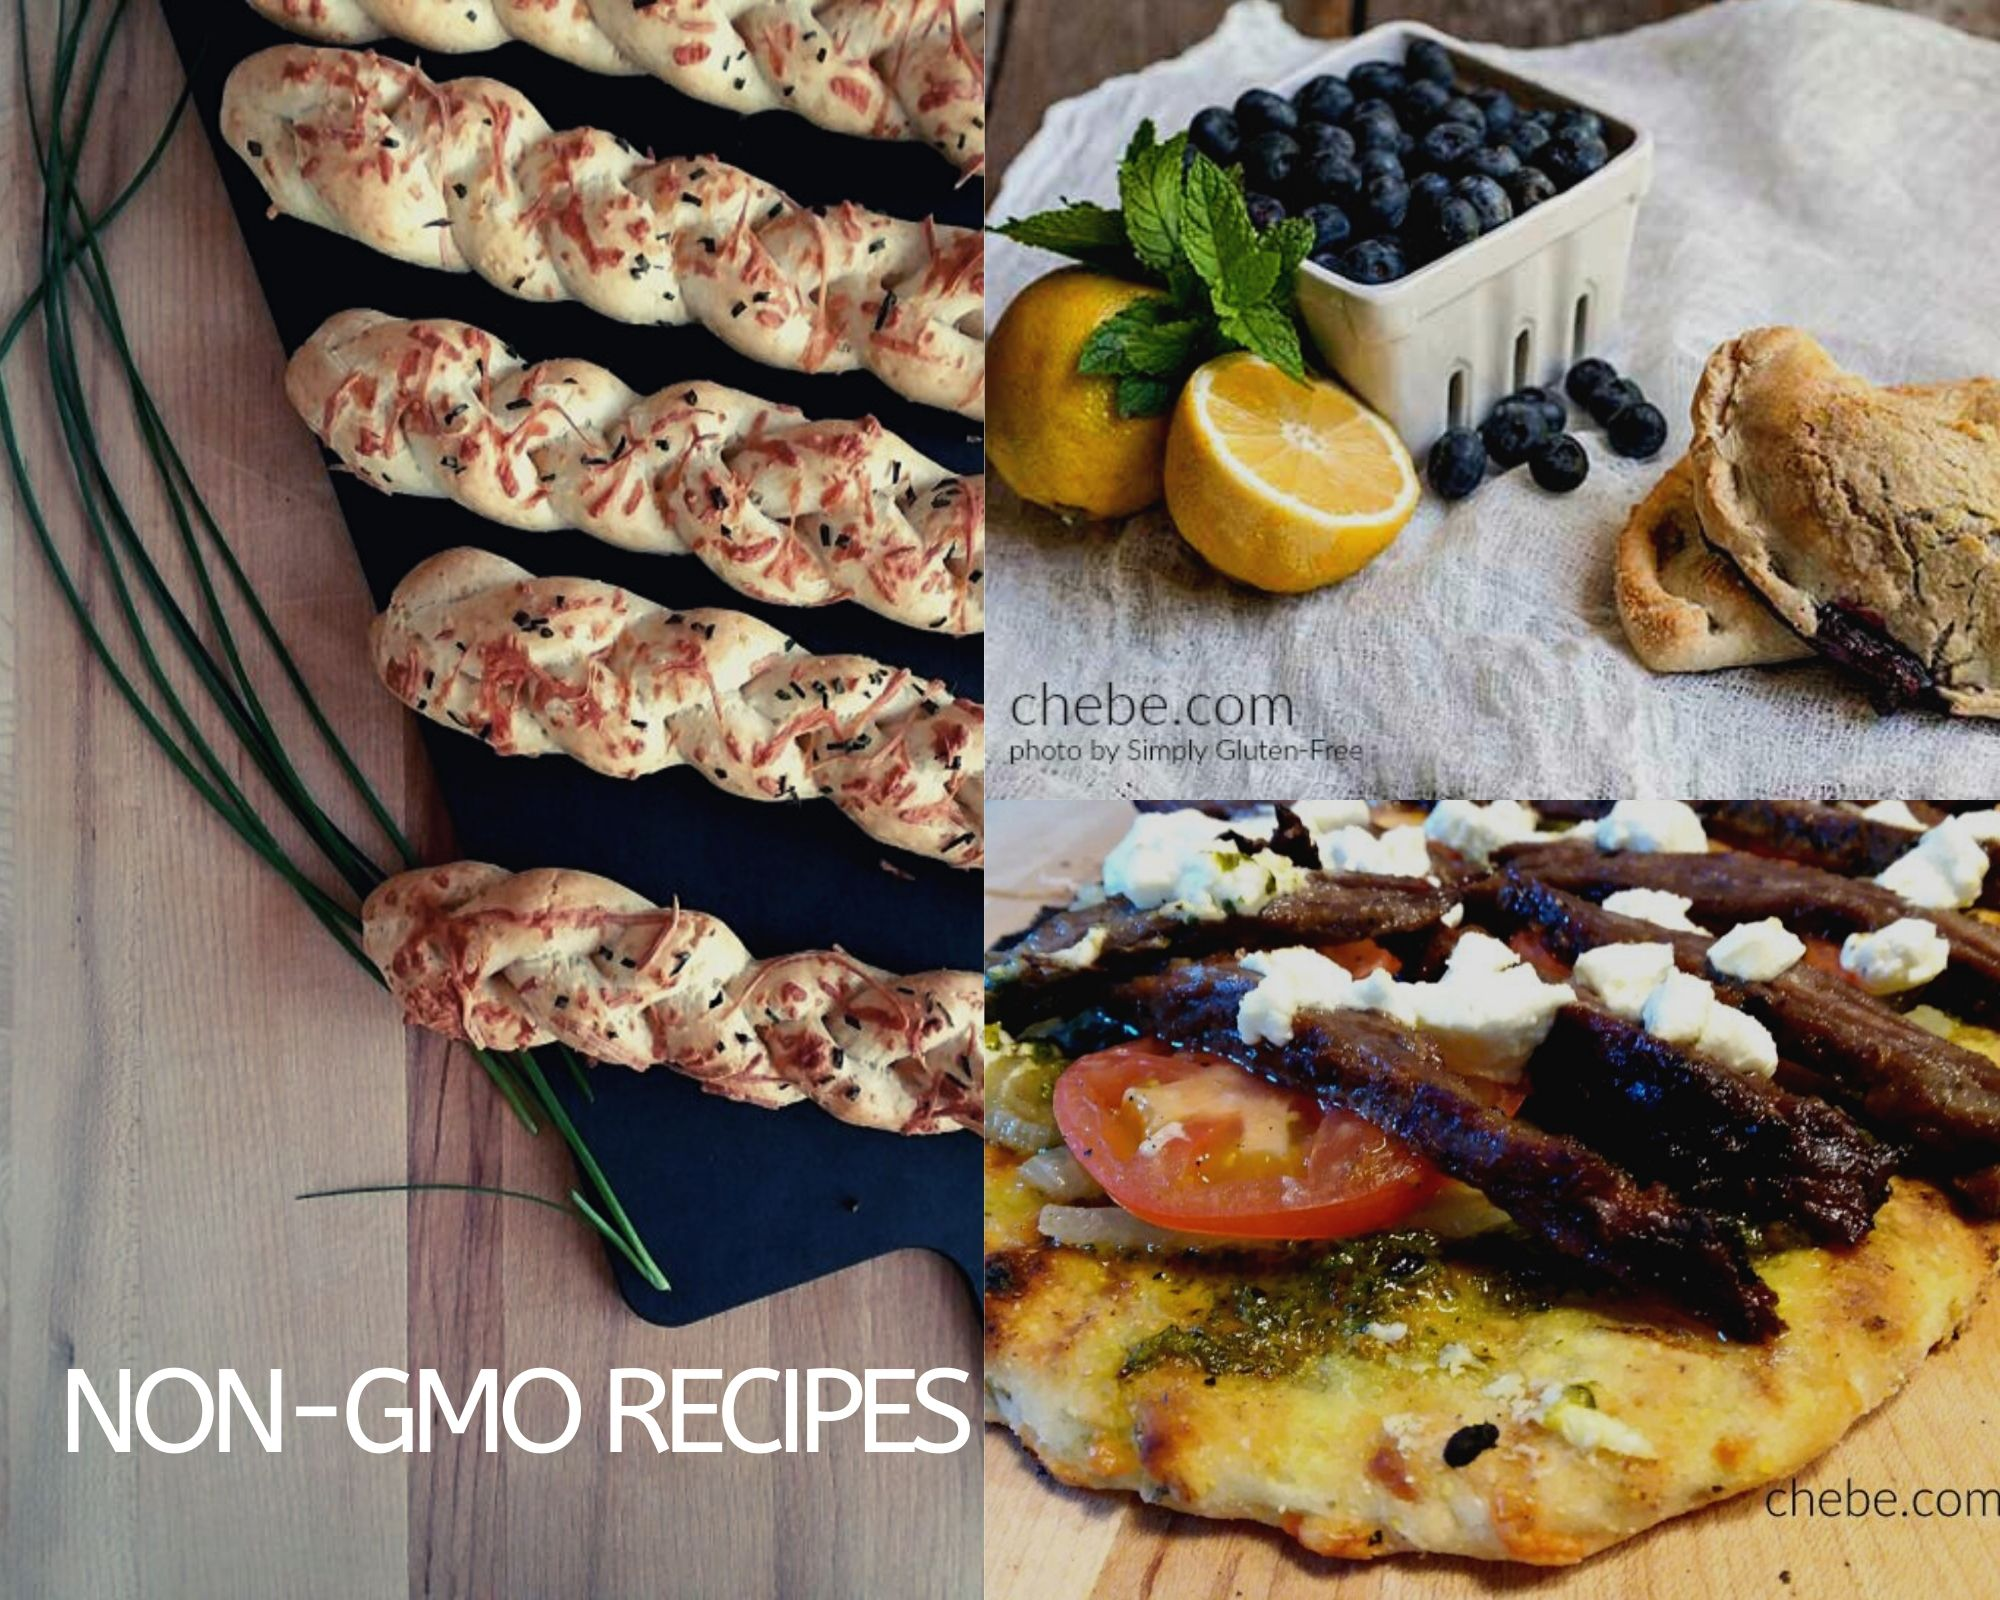 non-gmo recipes, gluren-free